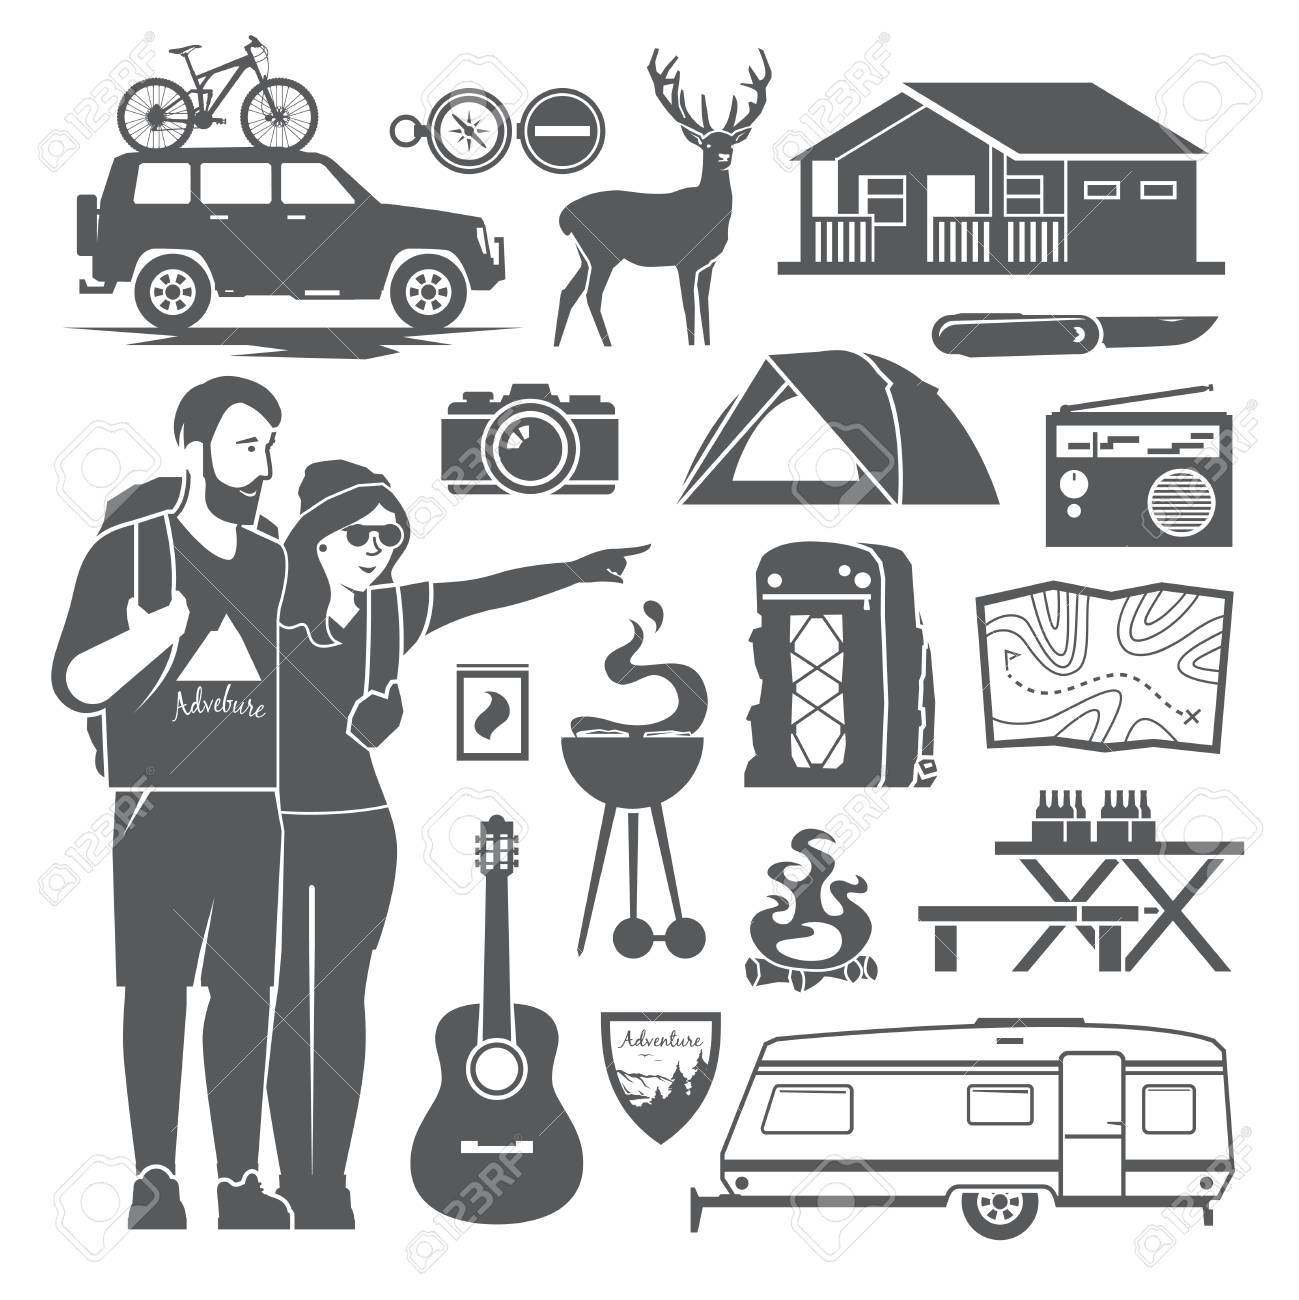 Vector Black And White Icons On The Theme Of Climbing Trekking Hiking Walking